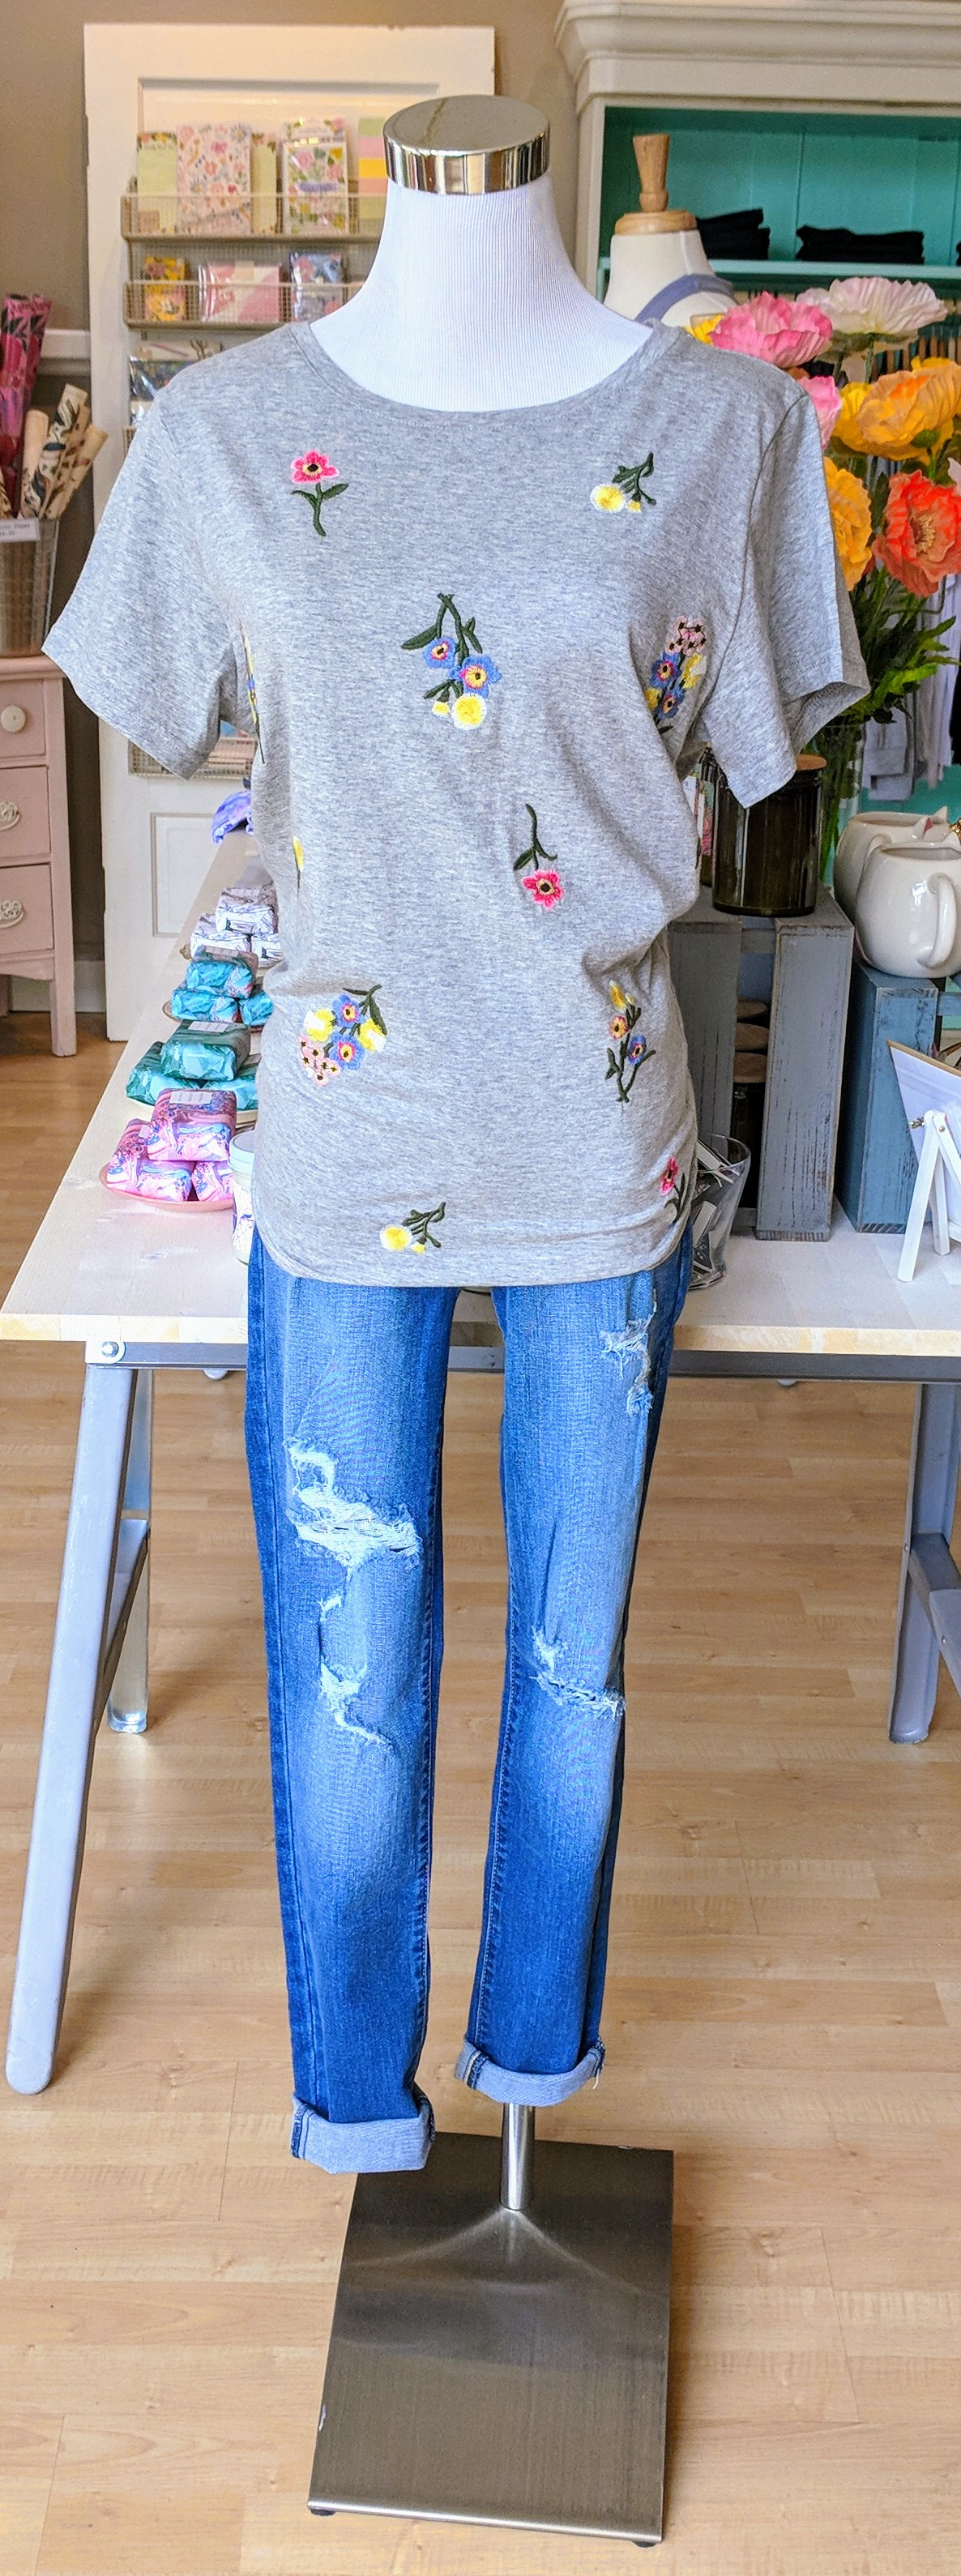 Grey top with embroidered floral pattern.